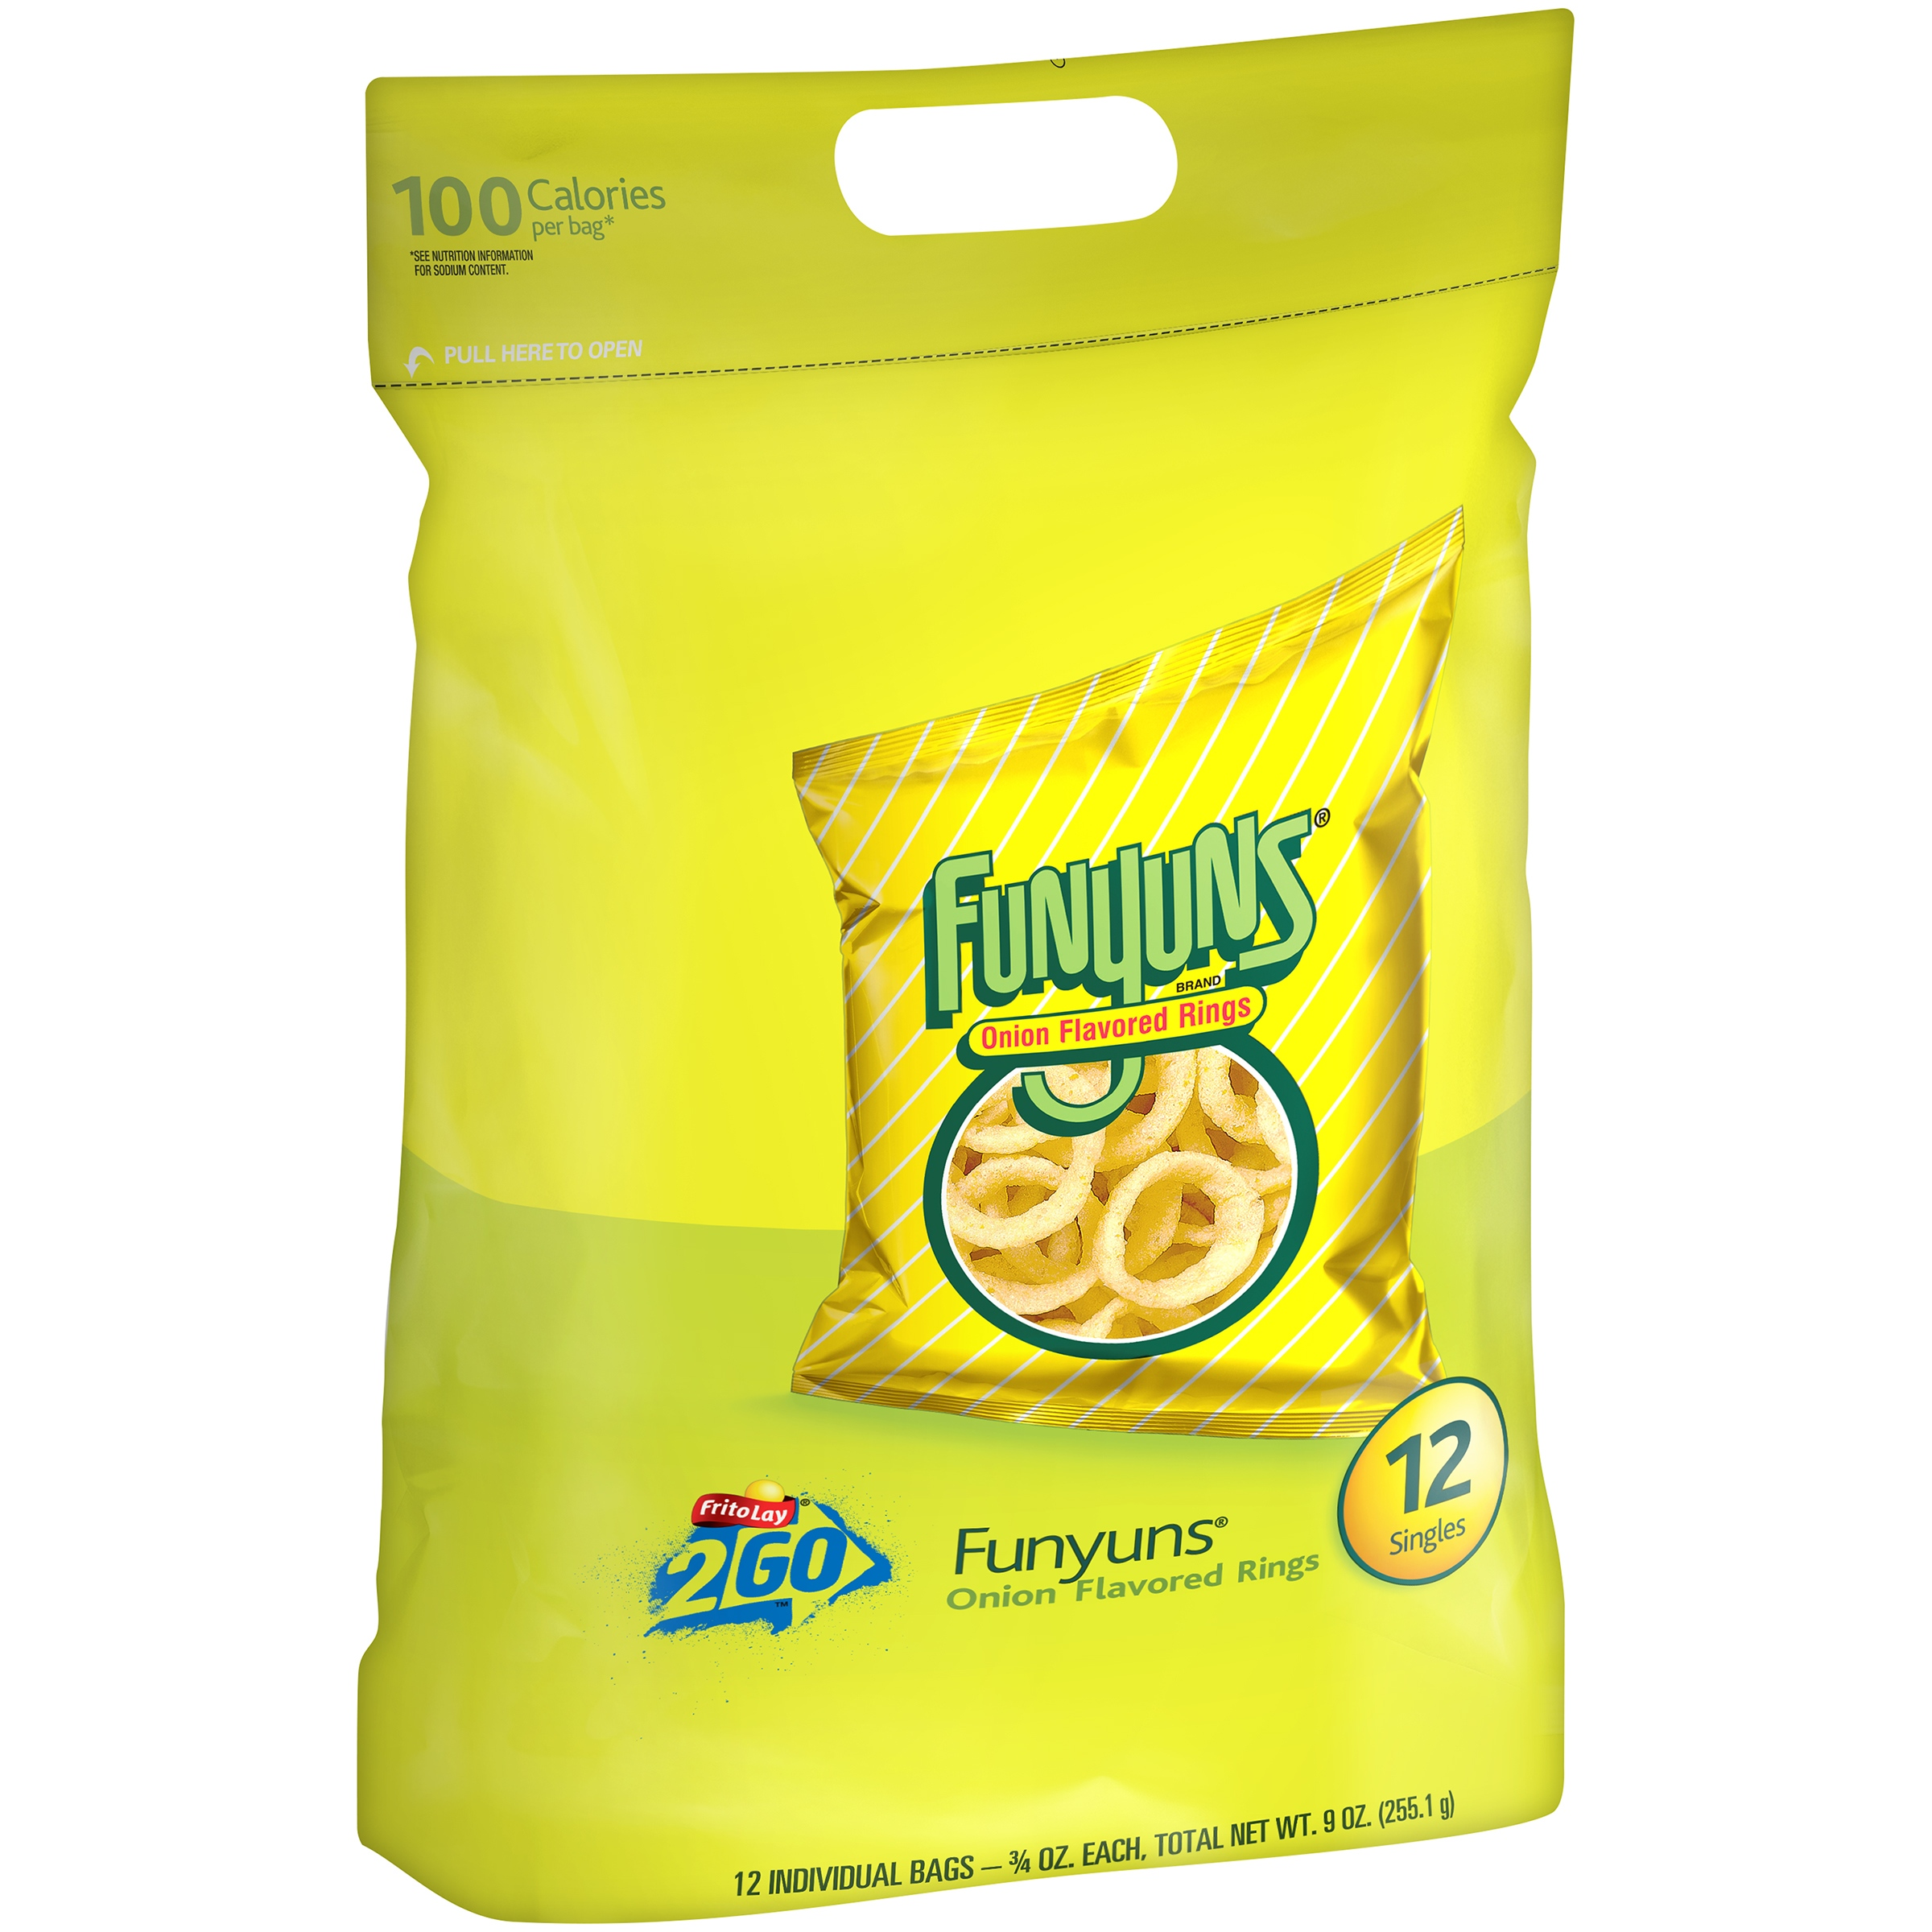 Funyuns® Onion Flavored Rings, 12 Count, 0.75 oz Bags